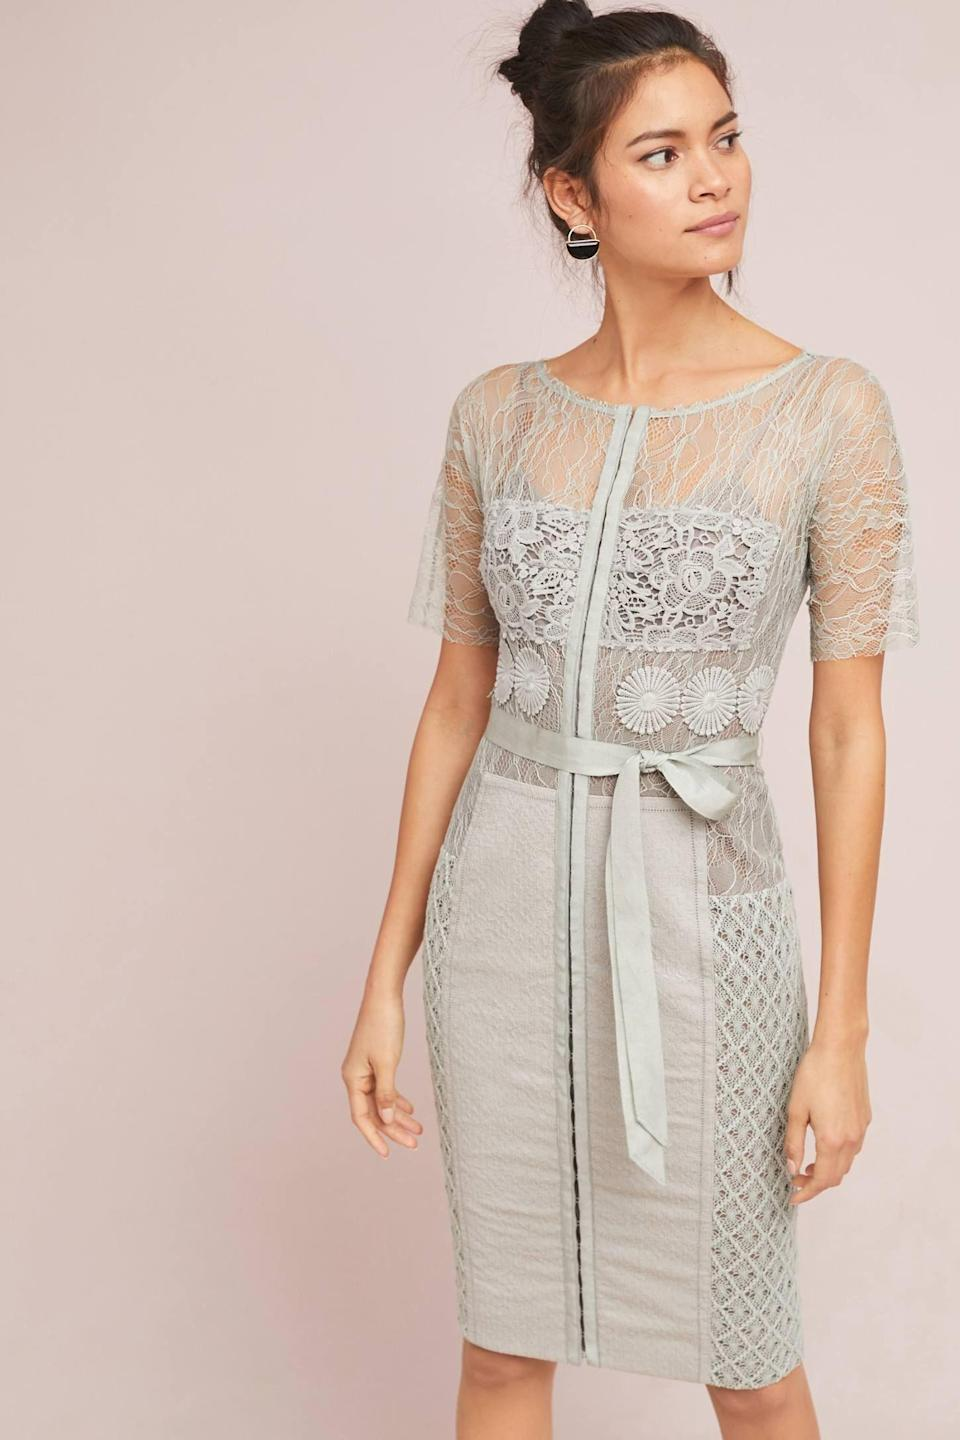 """<p><strong>Byron Lars</strong></p><p>anthropologie.com</p><p><strong>$258.00</strong></p><p><a href=""""https://go.redirectingat.com?id=74968X1596630&url=https%3A%2F%2Fwww.anthropologie.com%2Fshop%2Fbyron-lars-carissima-sheath-dress4&sref=https%3A%2F%2Fwww.townandcountrymag.com%2Fstyle%2Ffashion-trends%2Fg12096491%2Fbest-fall-wedding-guest-dresses%2F"""" rel=""""nofollow noopener"""" target=""""_blank"""" data-ylk=""""slk:Shop Now"""" class=""""link rapid-noclick-resp"""">Shop Now</a></p><p>Take your summery love of lace into the cool weather with a seasonless grey.</p>"""